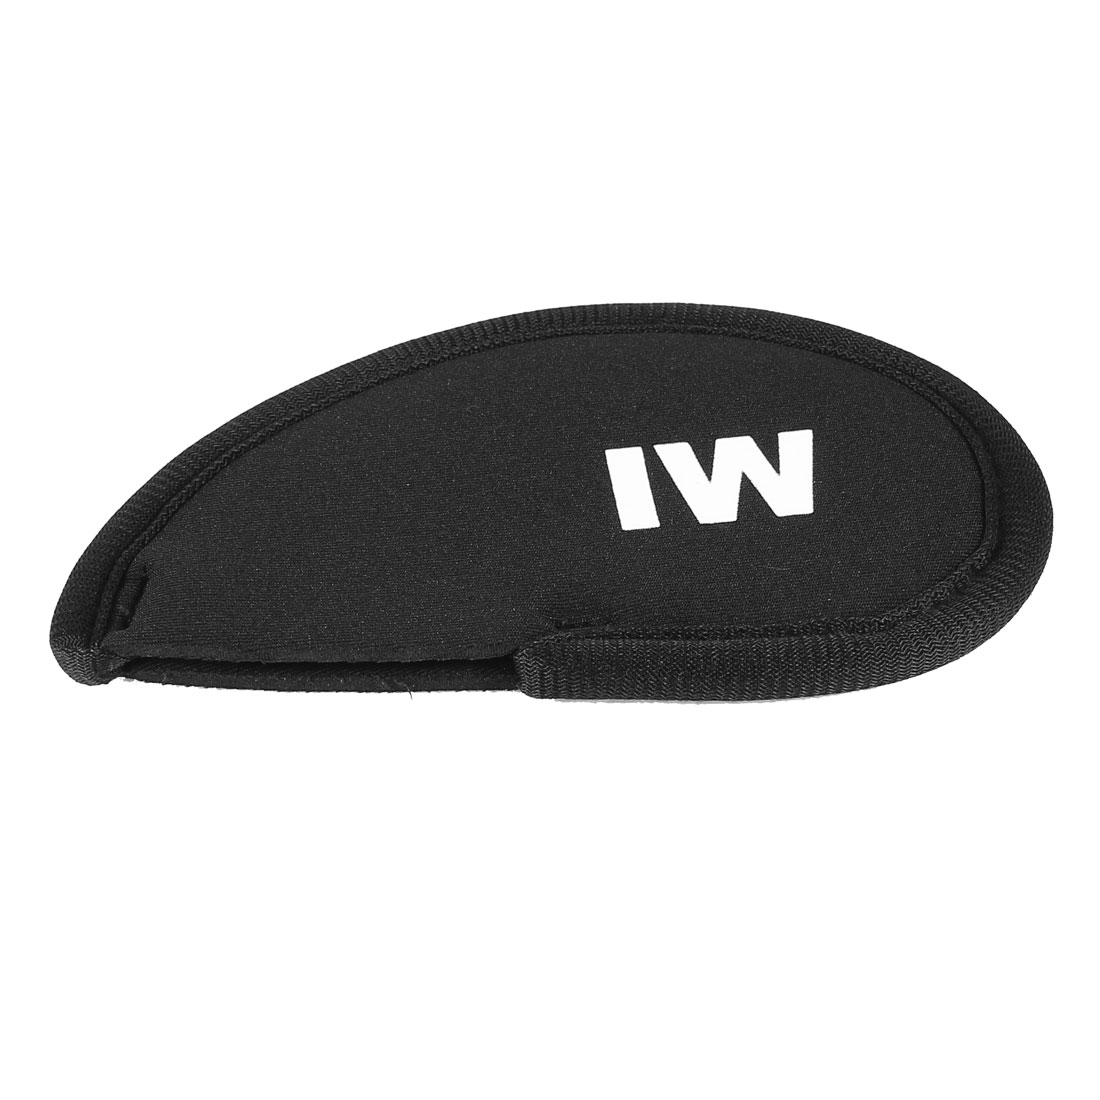 Black Neoprene Golf Club Head Cover IW Wedge Iron Protective Headcovers